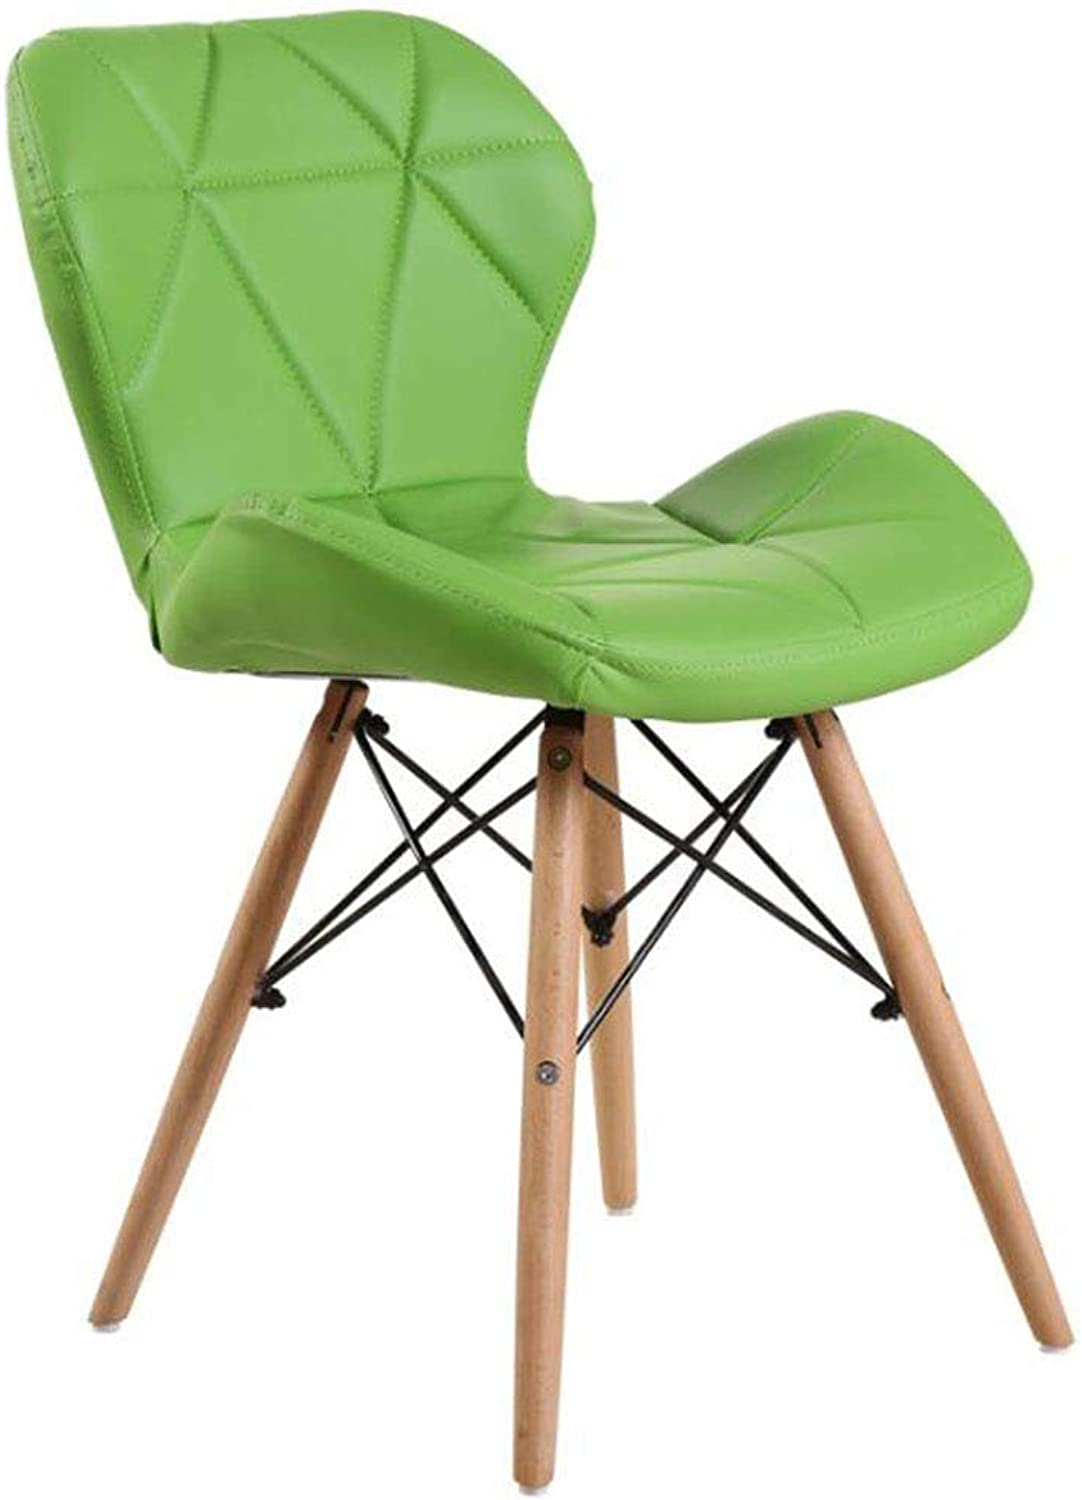 Computer Chair Household Dining Chair Cafe Backrest Chair Solid Wood Soft Bag Office Chair (color   Green)